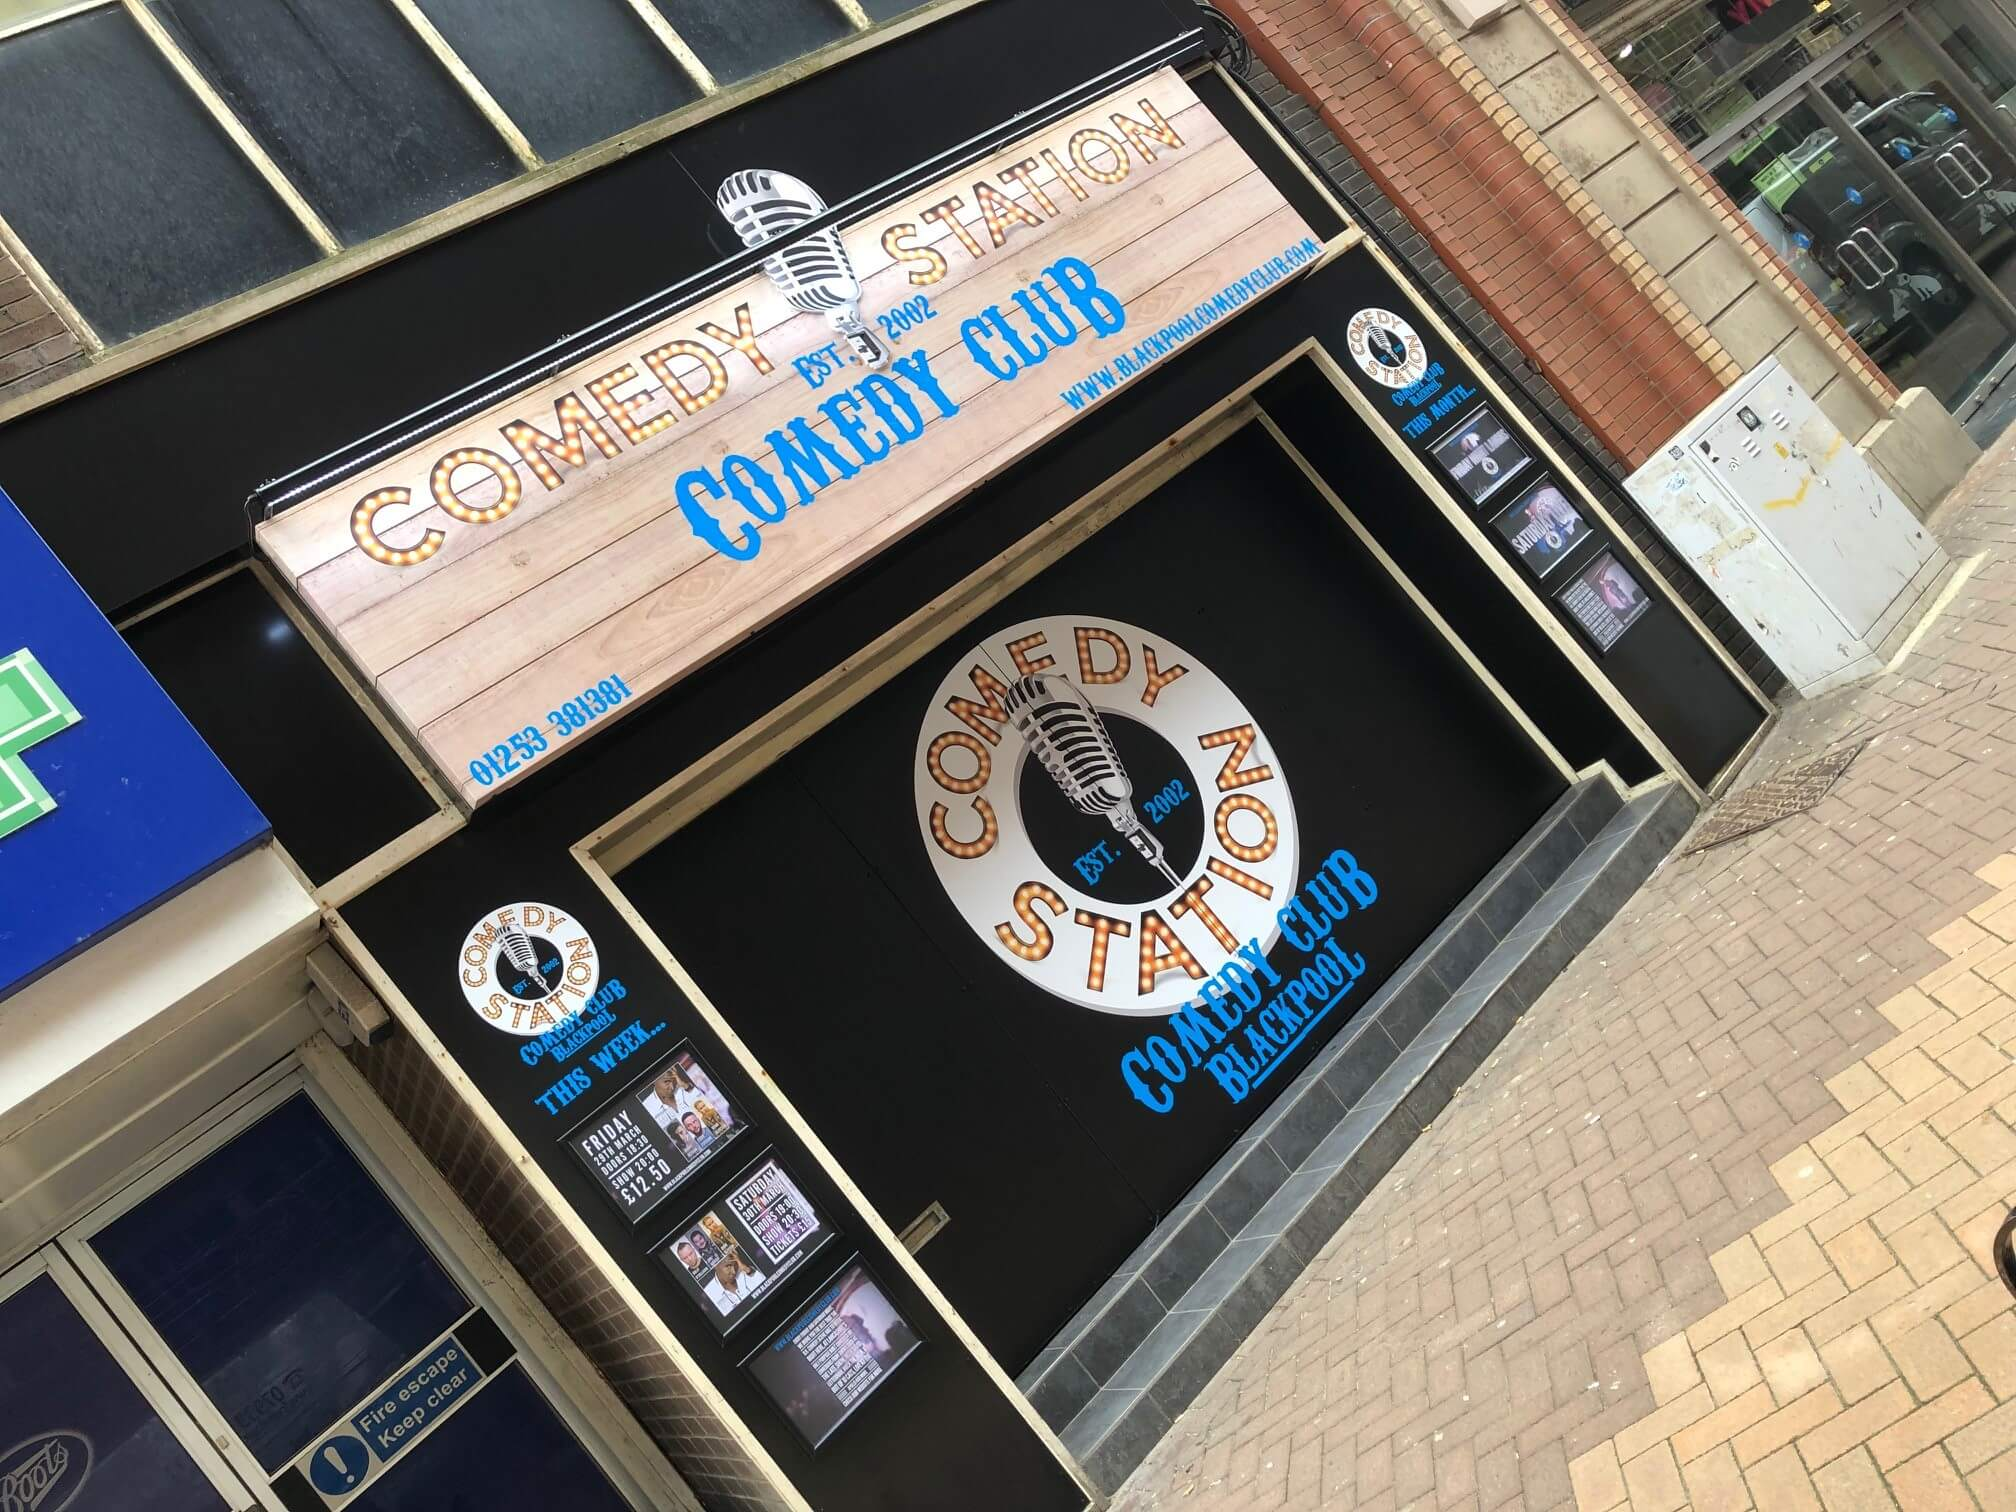 The comedy club blackpool external sign